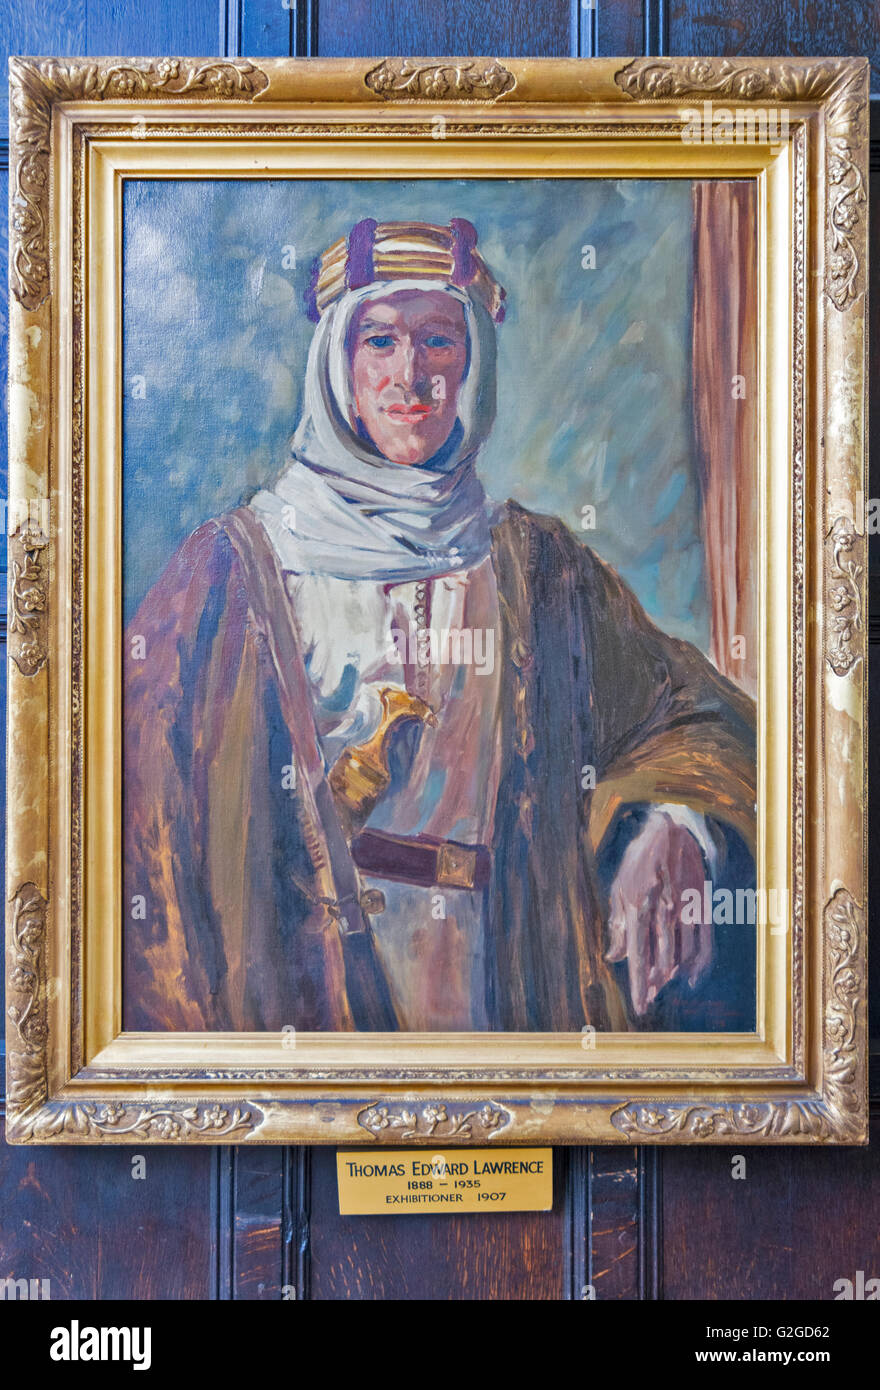 PORTRAIT OF T E LAWRENCE HANGING IN THE DINING ROOM OF JESUS COLLEGE OXFORD - Stock Image